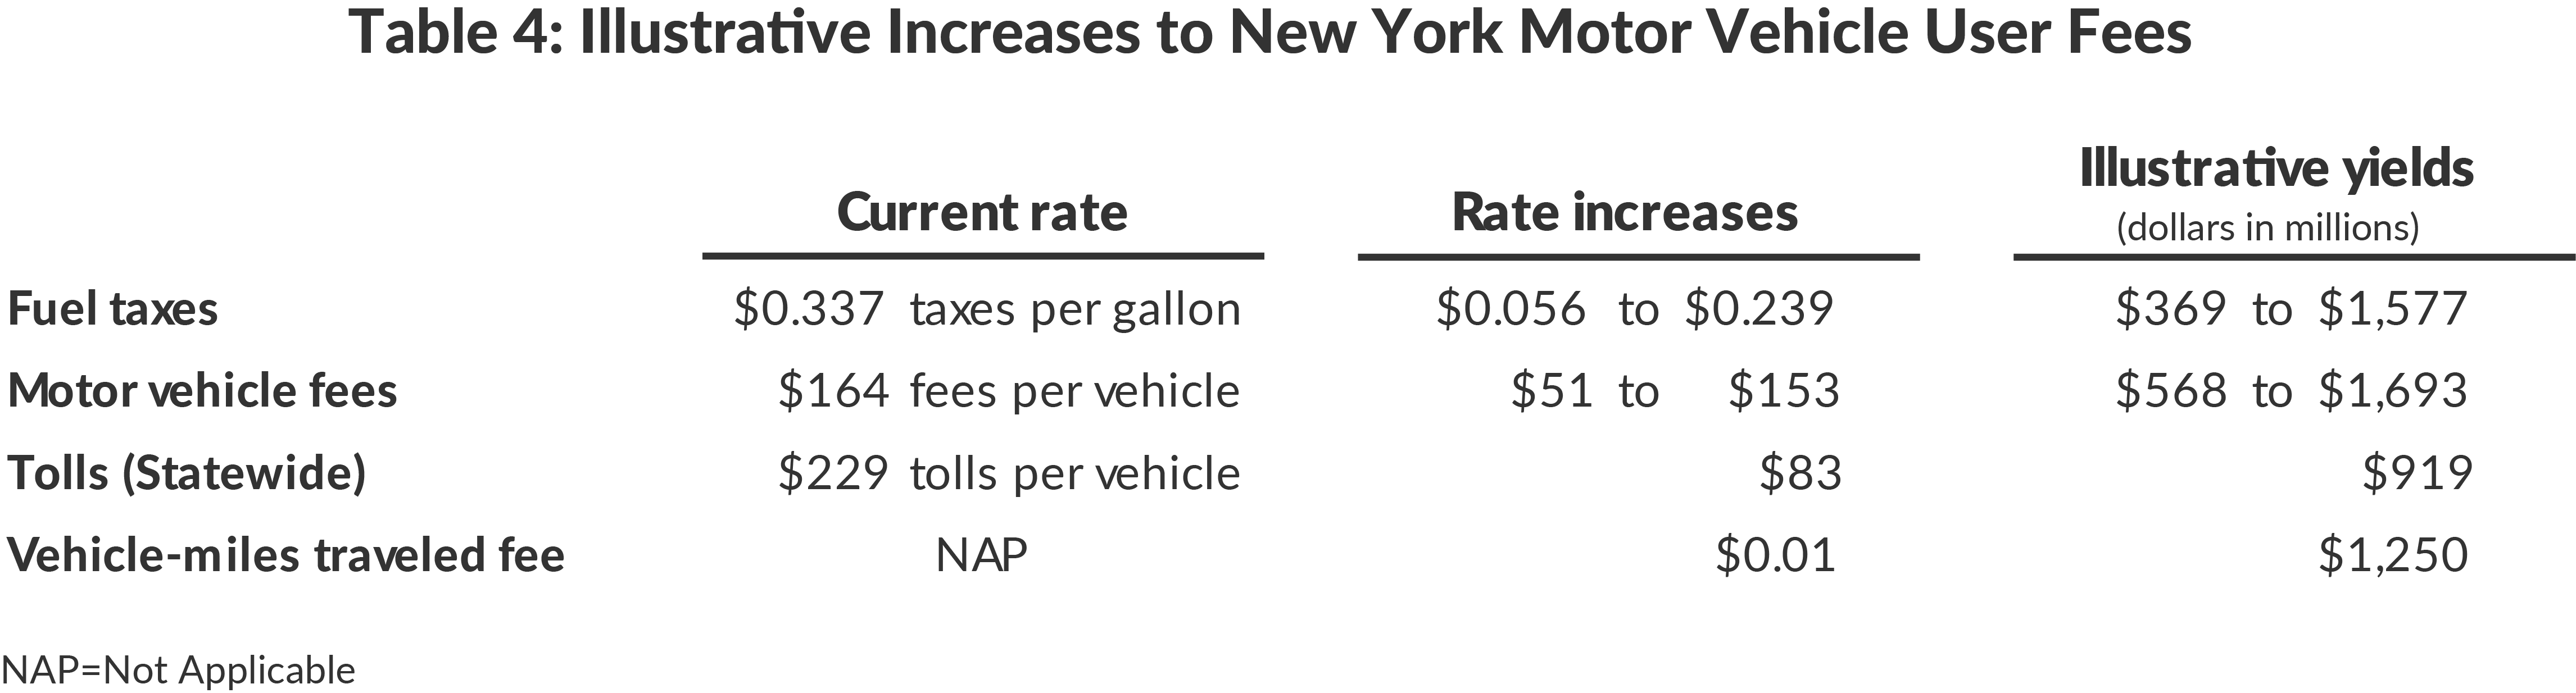 Table 4: Illustrative Increases to New York Motor Vehicle User Fees